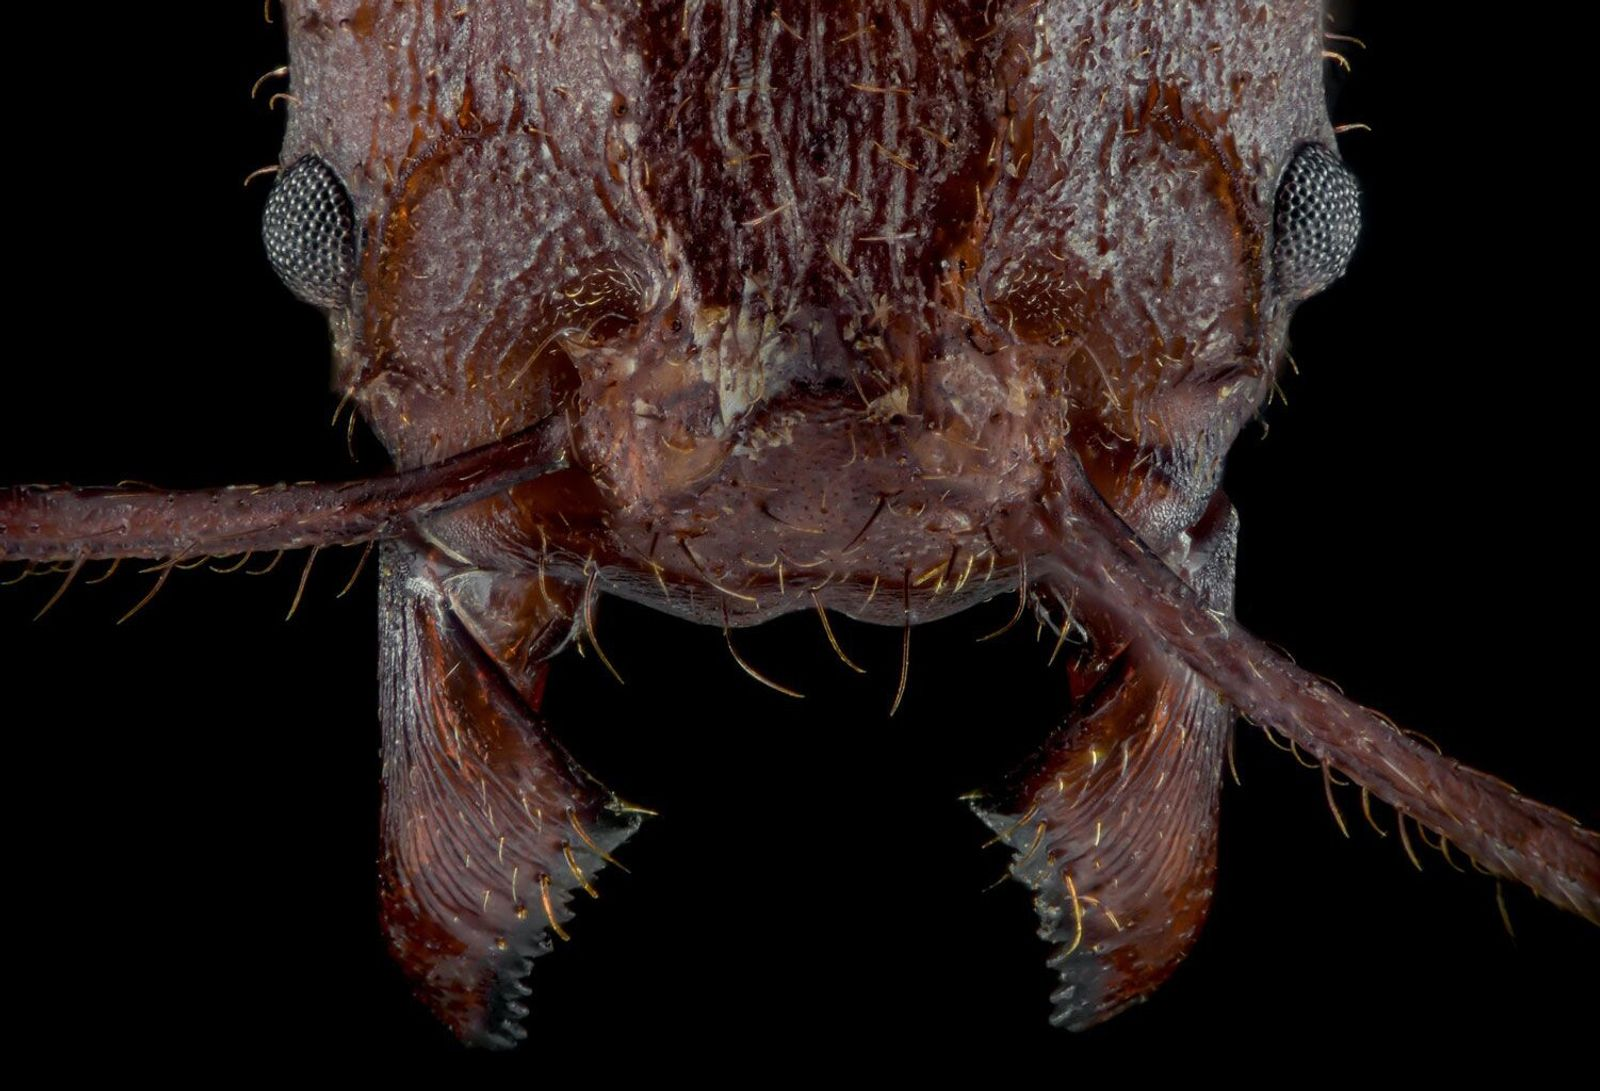 Leaf-cutter ants have rocky crystal armour, never before seen in insects